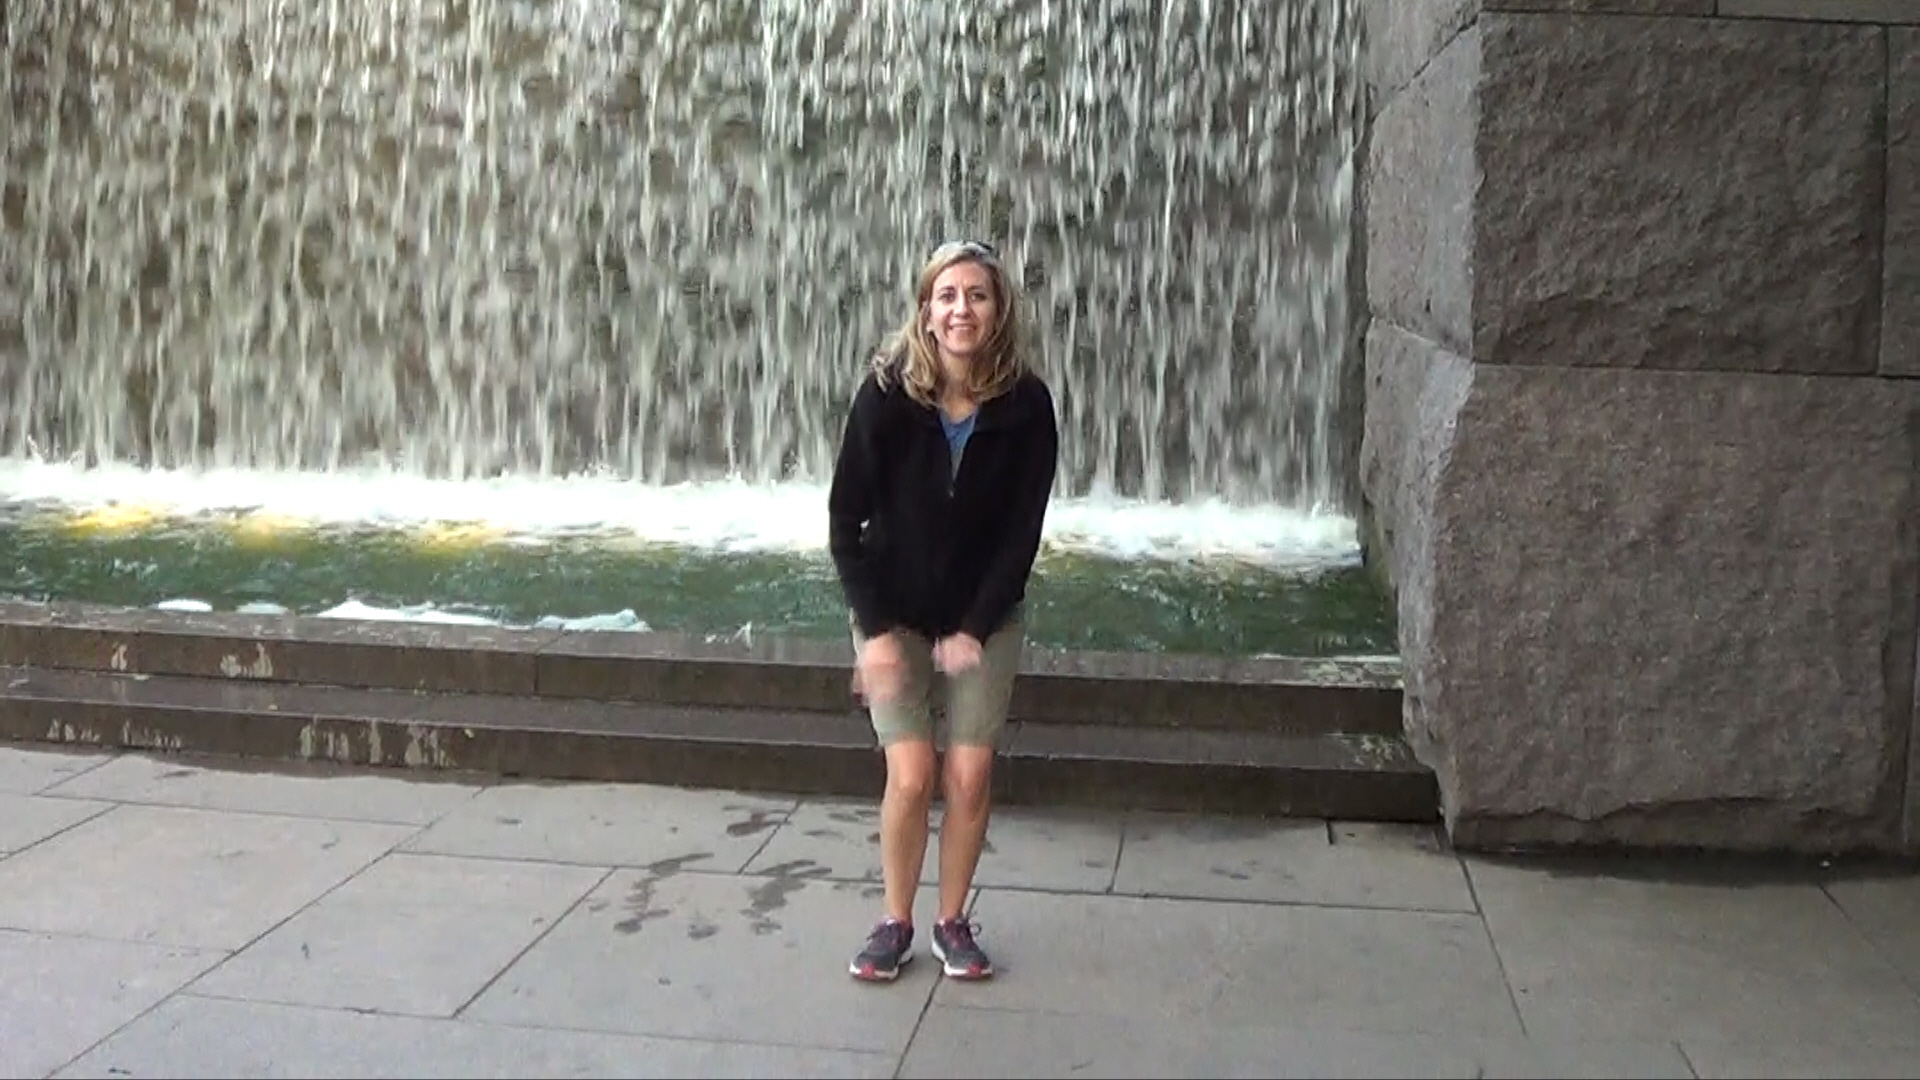 08 - Roosevelt Memorial Fountain